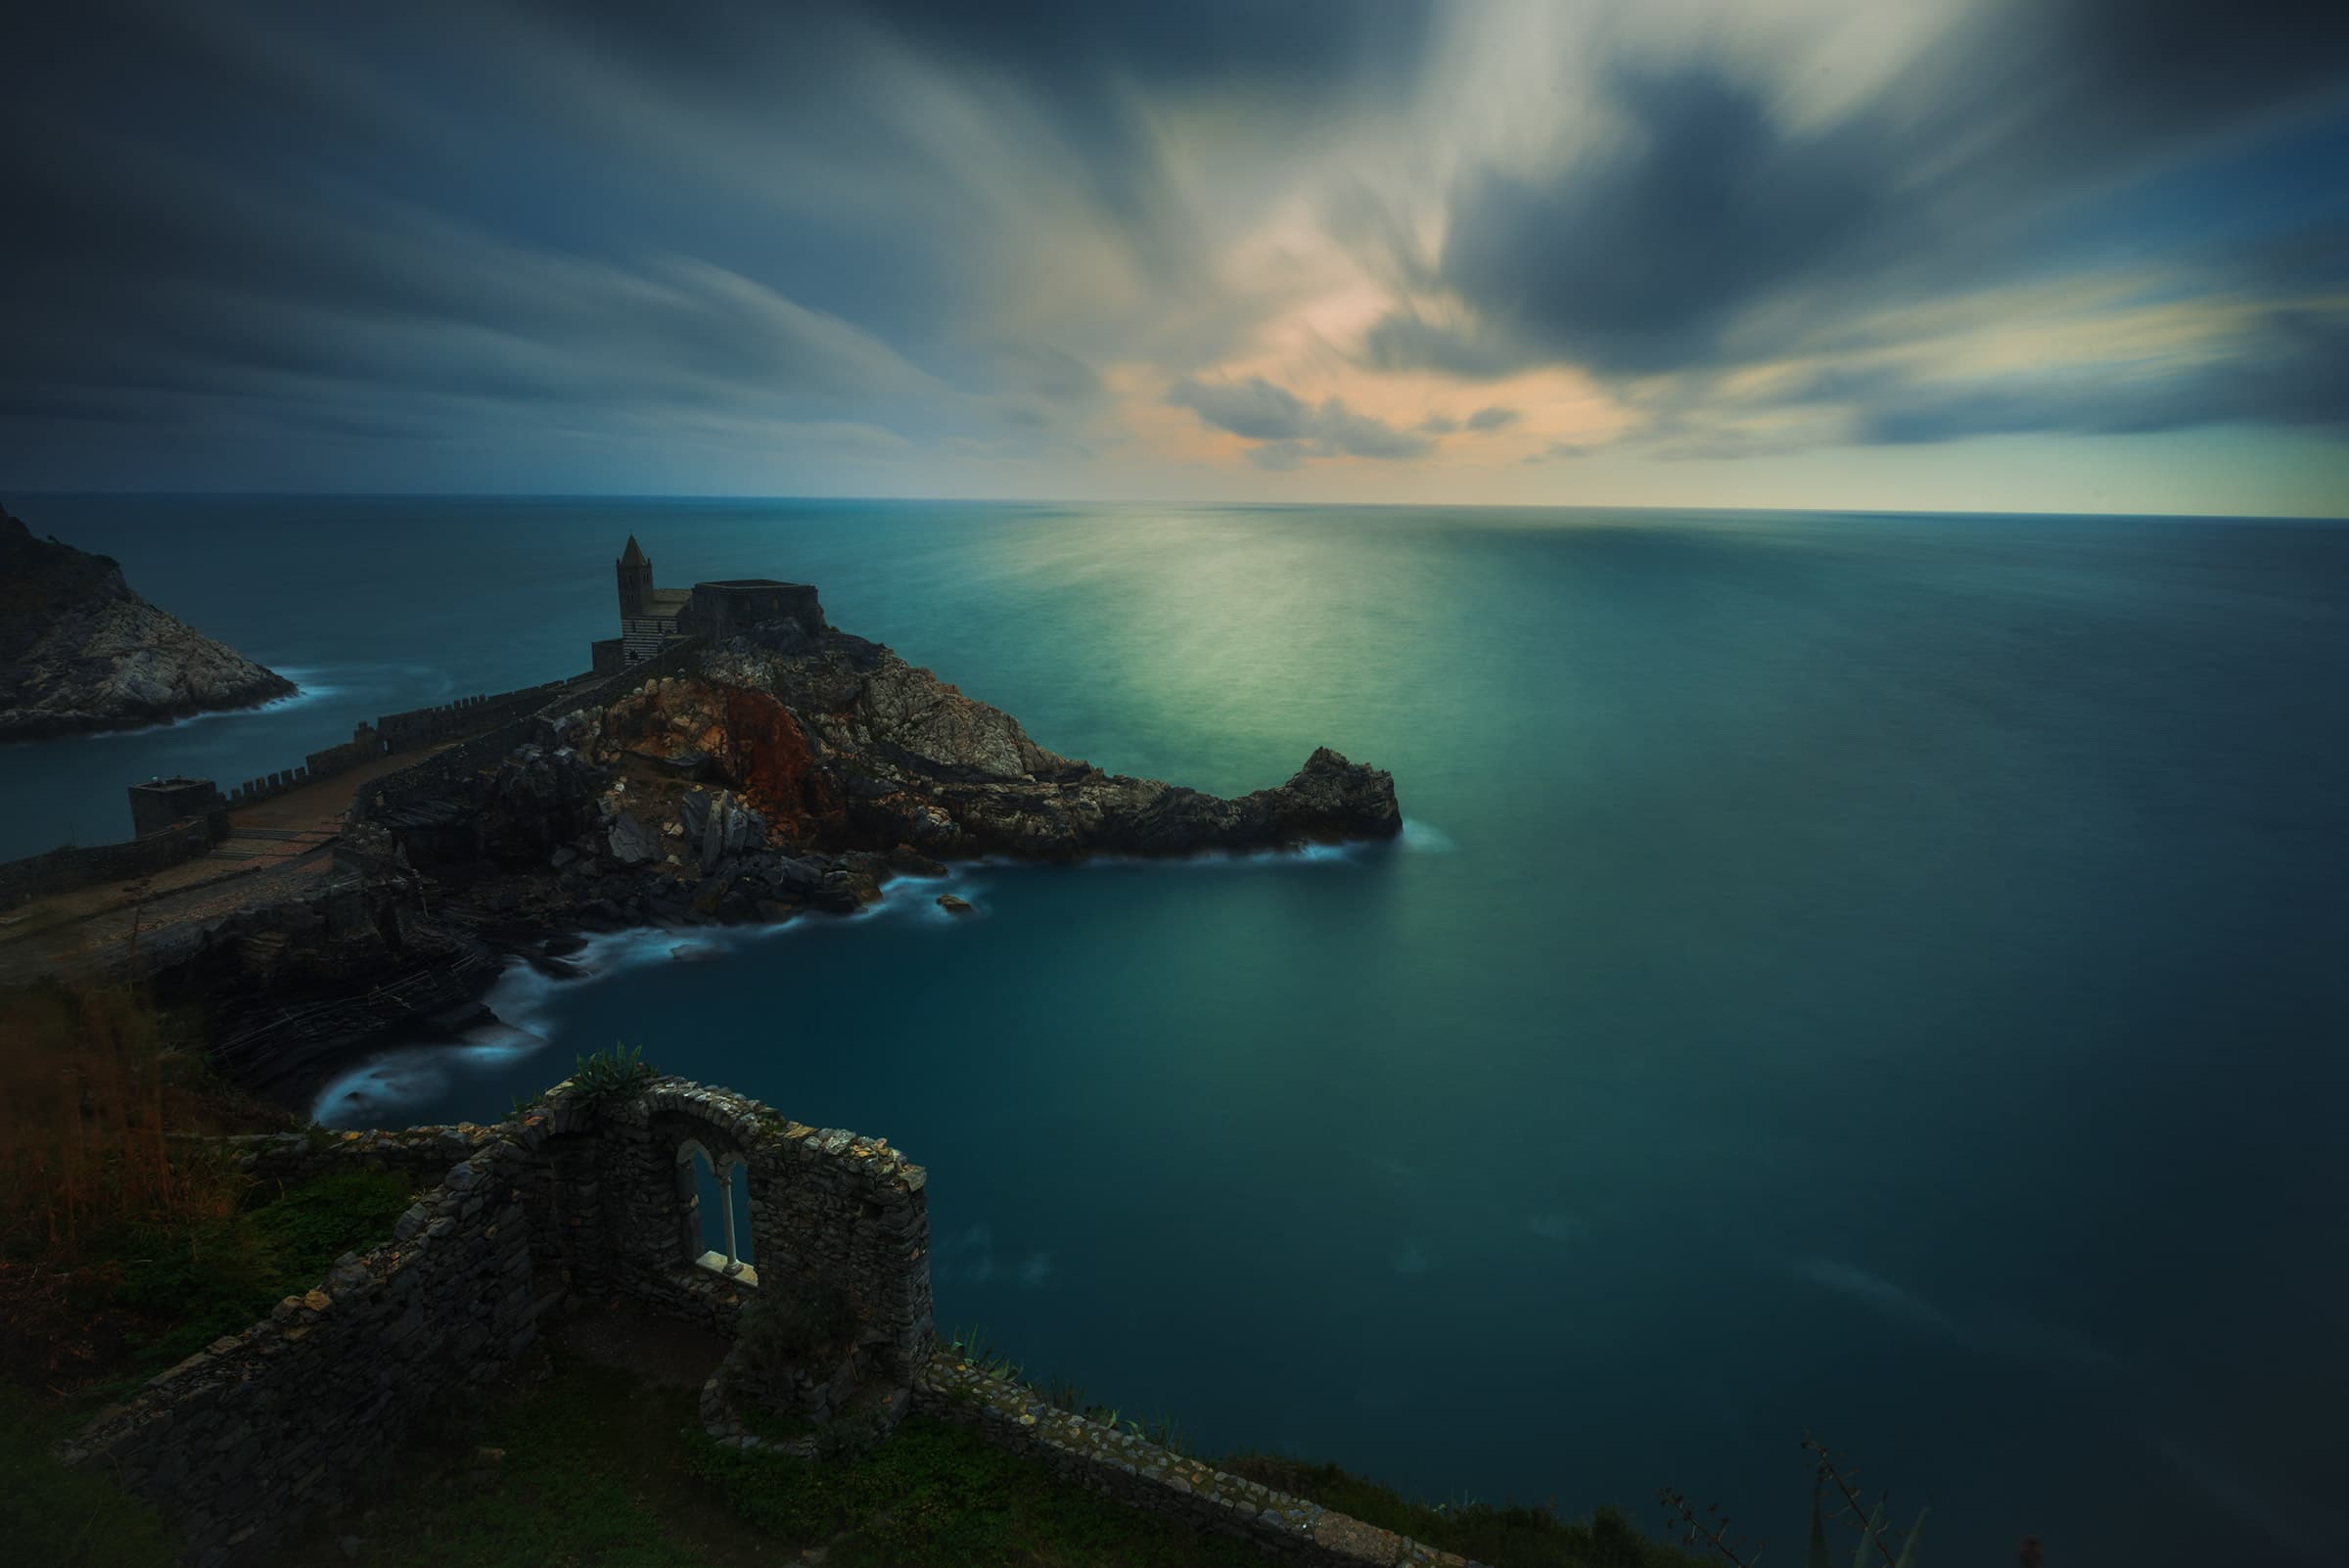 Portovenere in Italy during a cloudy day